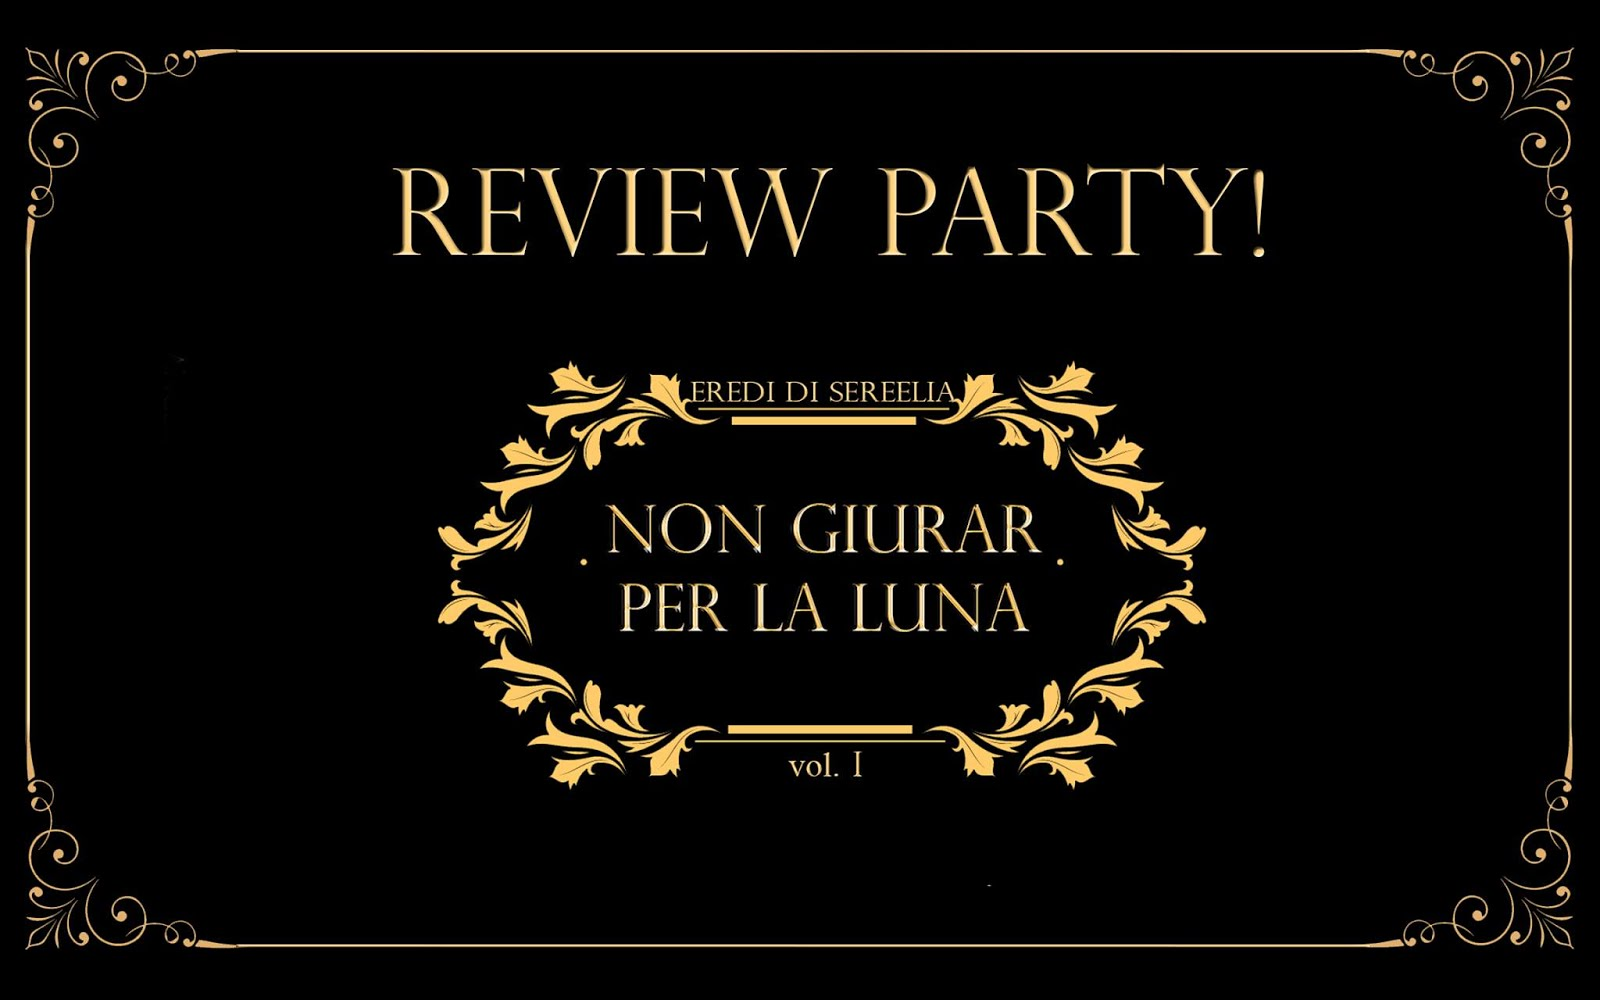 Review Party